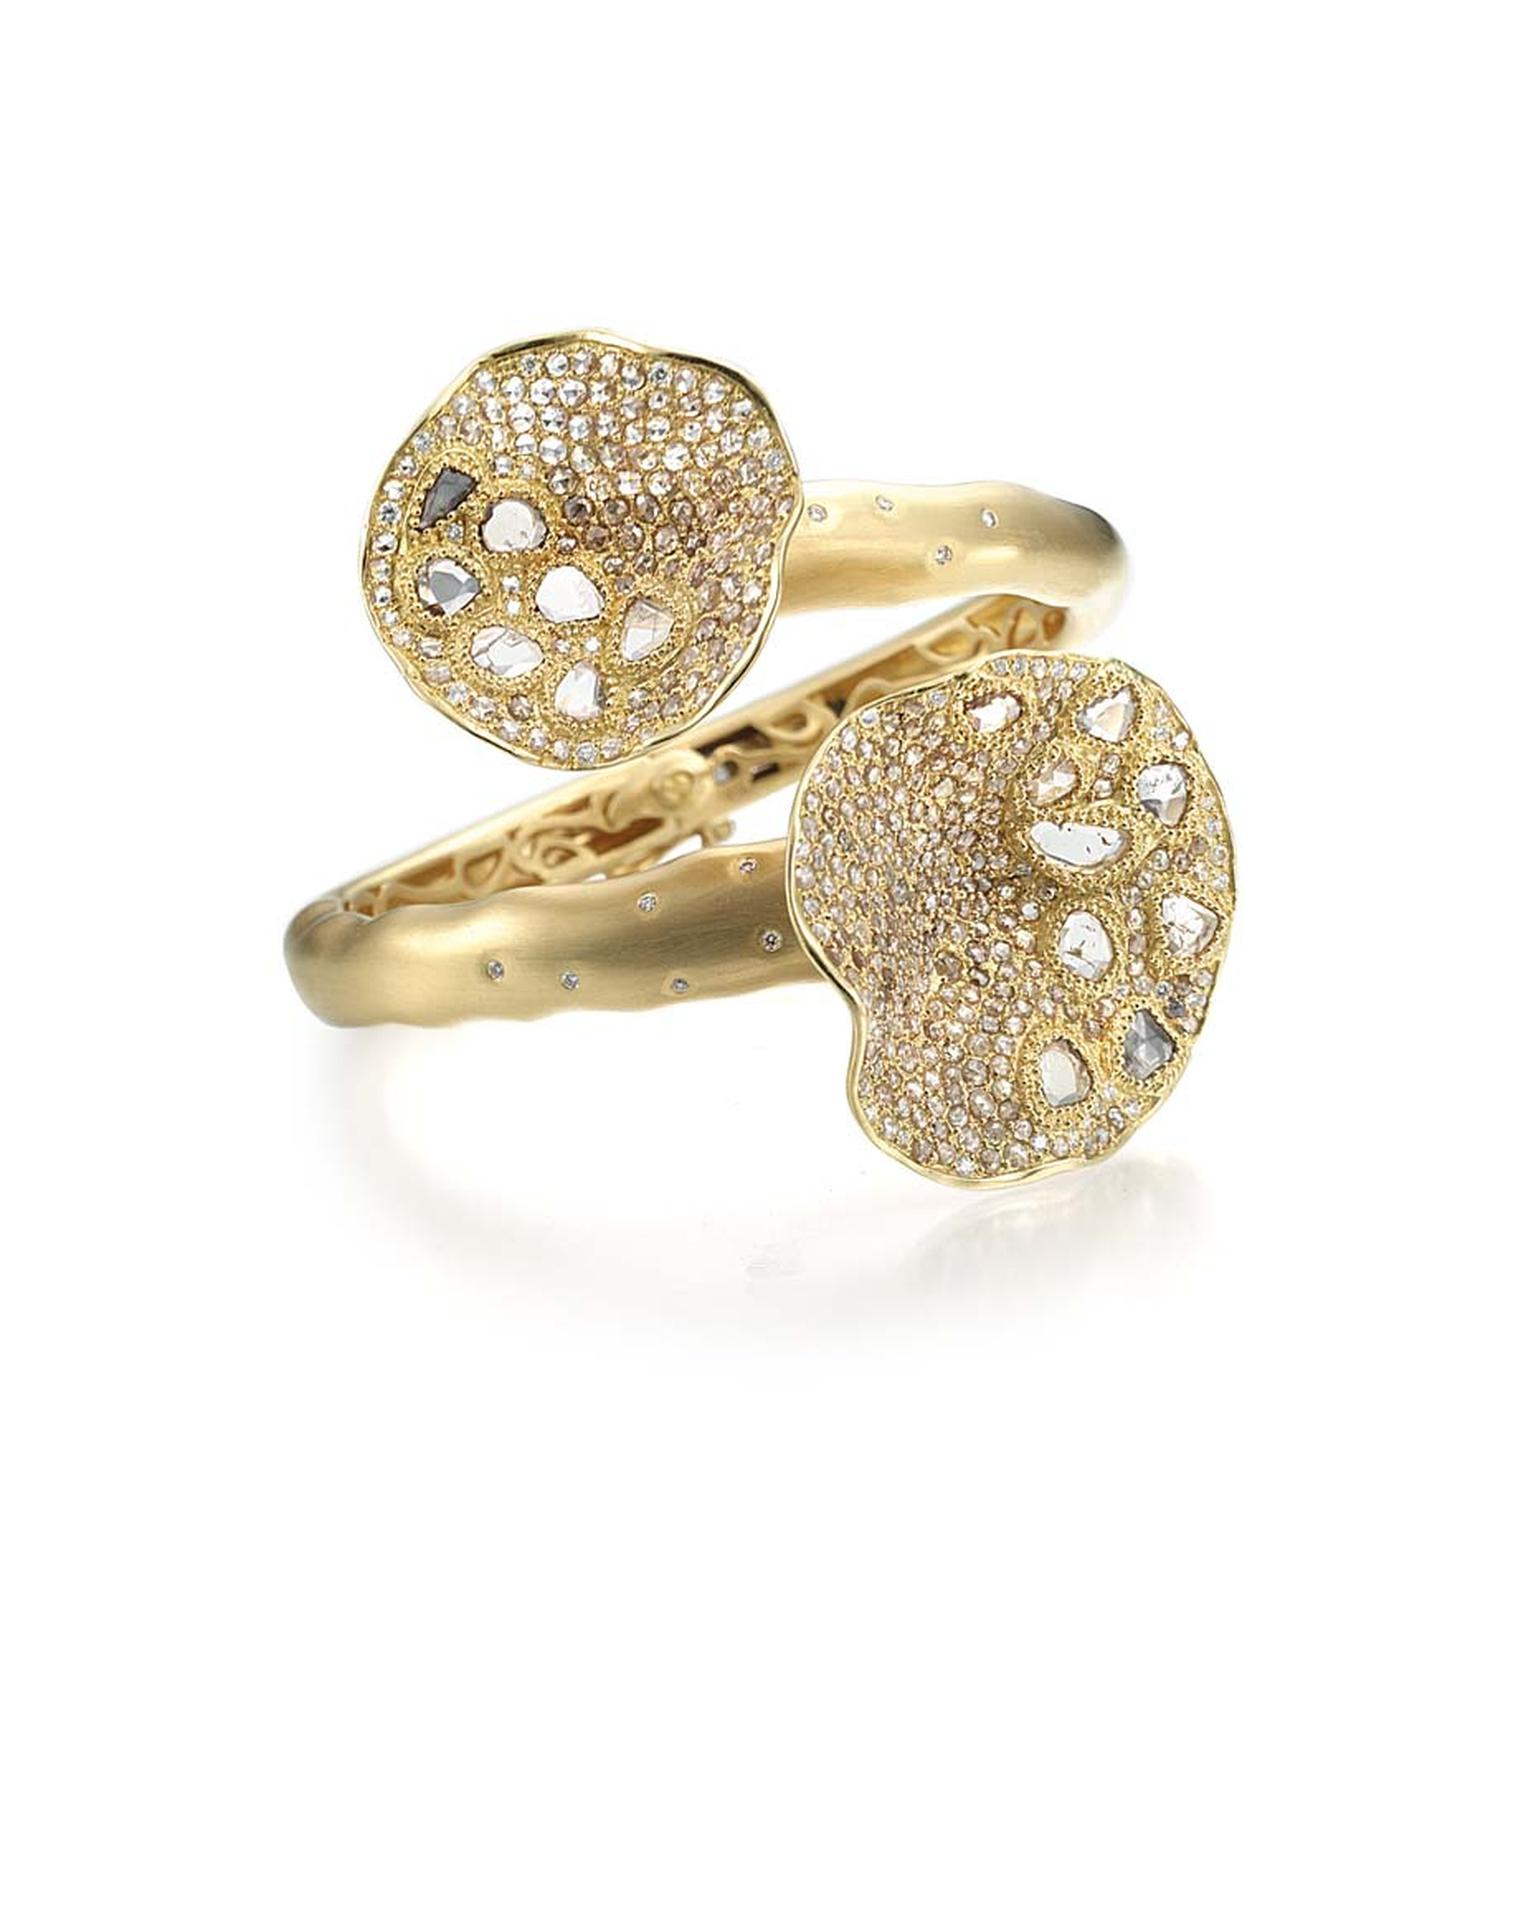 Coomi Serenity Flower ring with gold, brilliant diamonds and rose-cut diamond paisley.